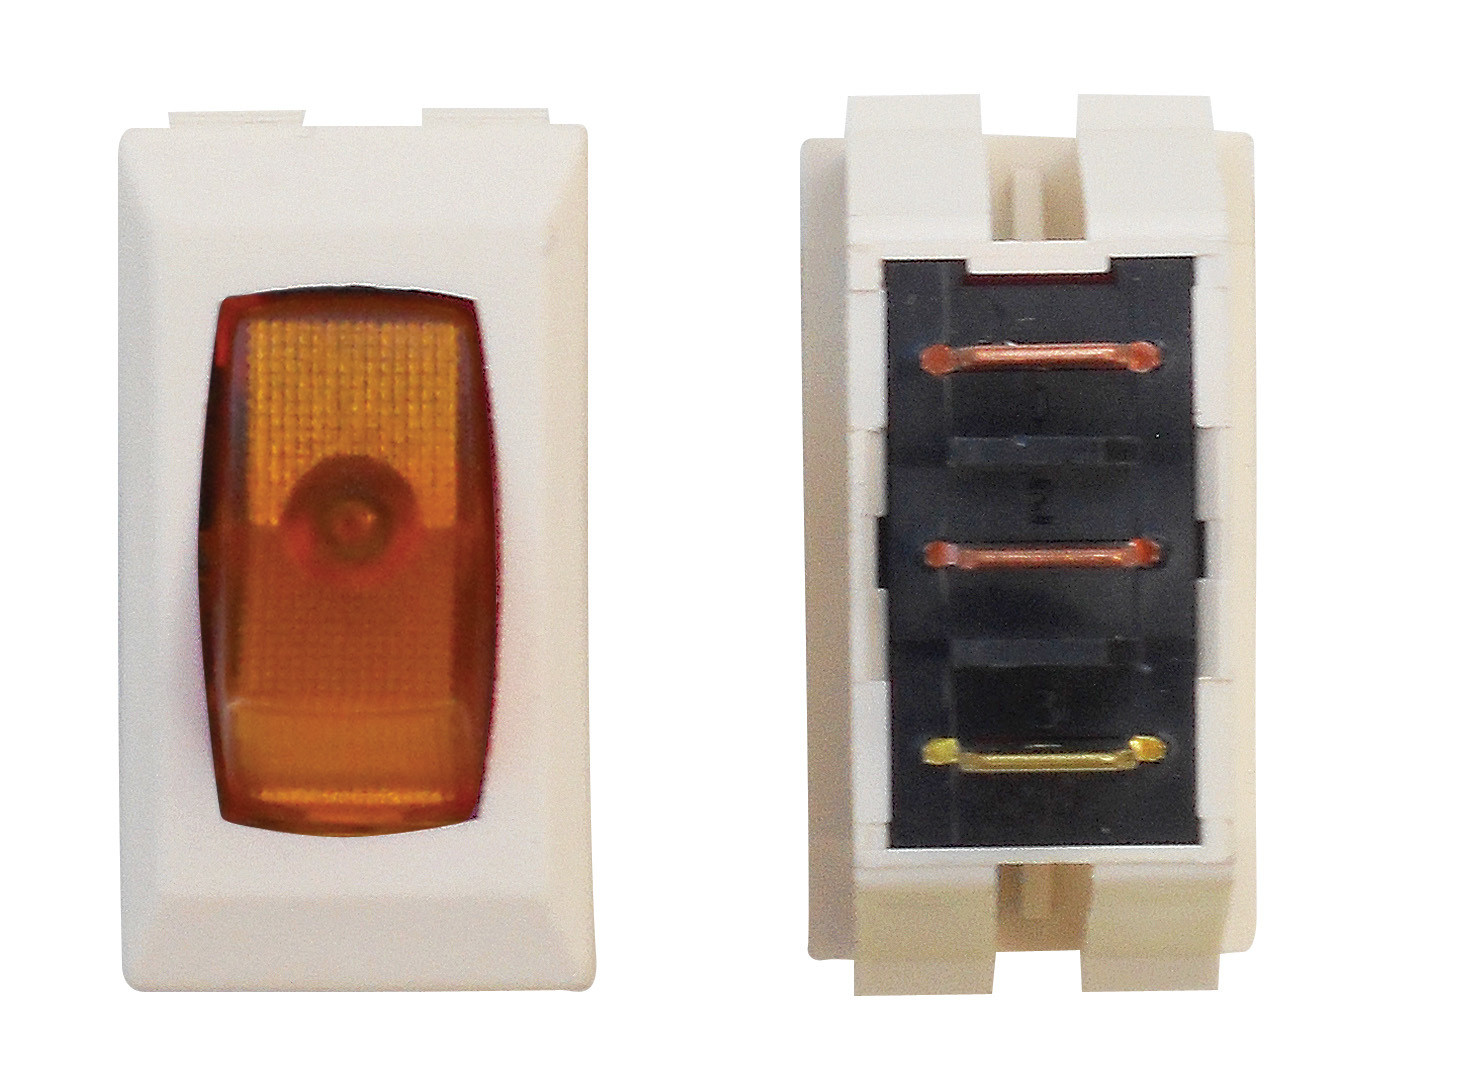 Illuminated On/Off Switch - Amber/Ivory 1/card